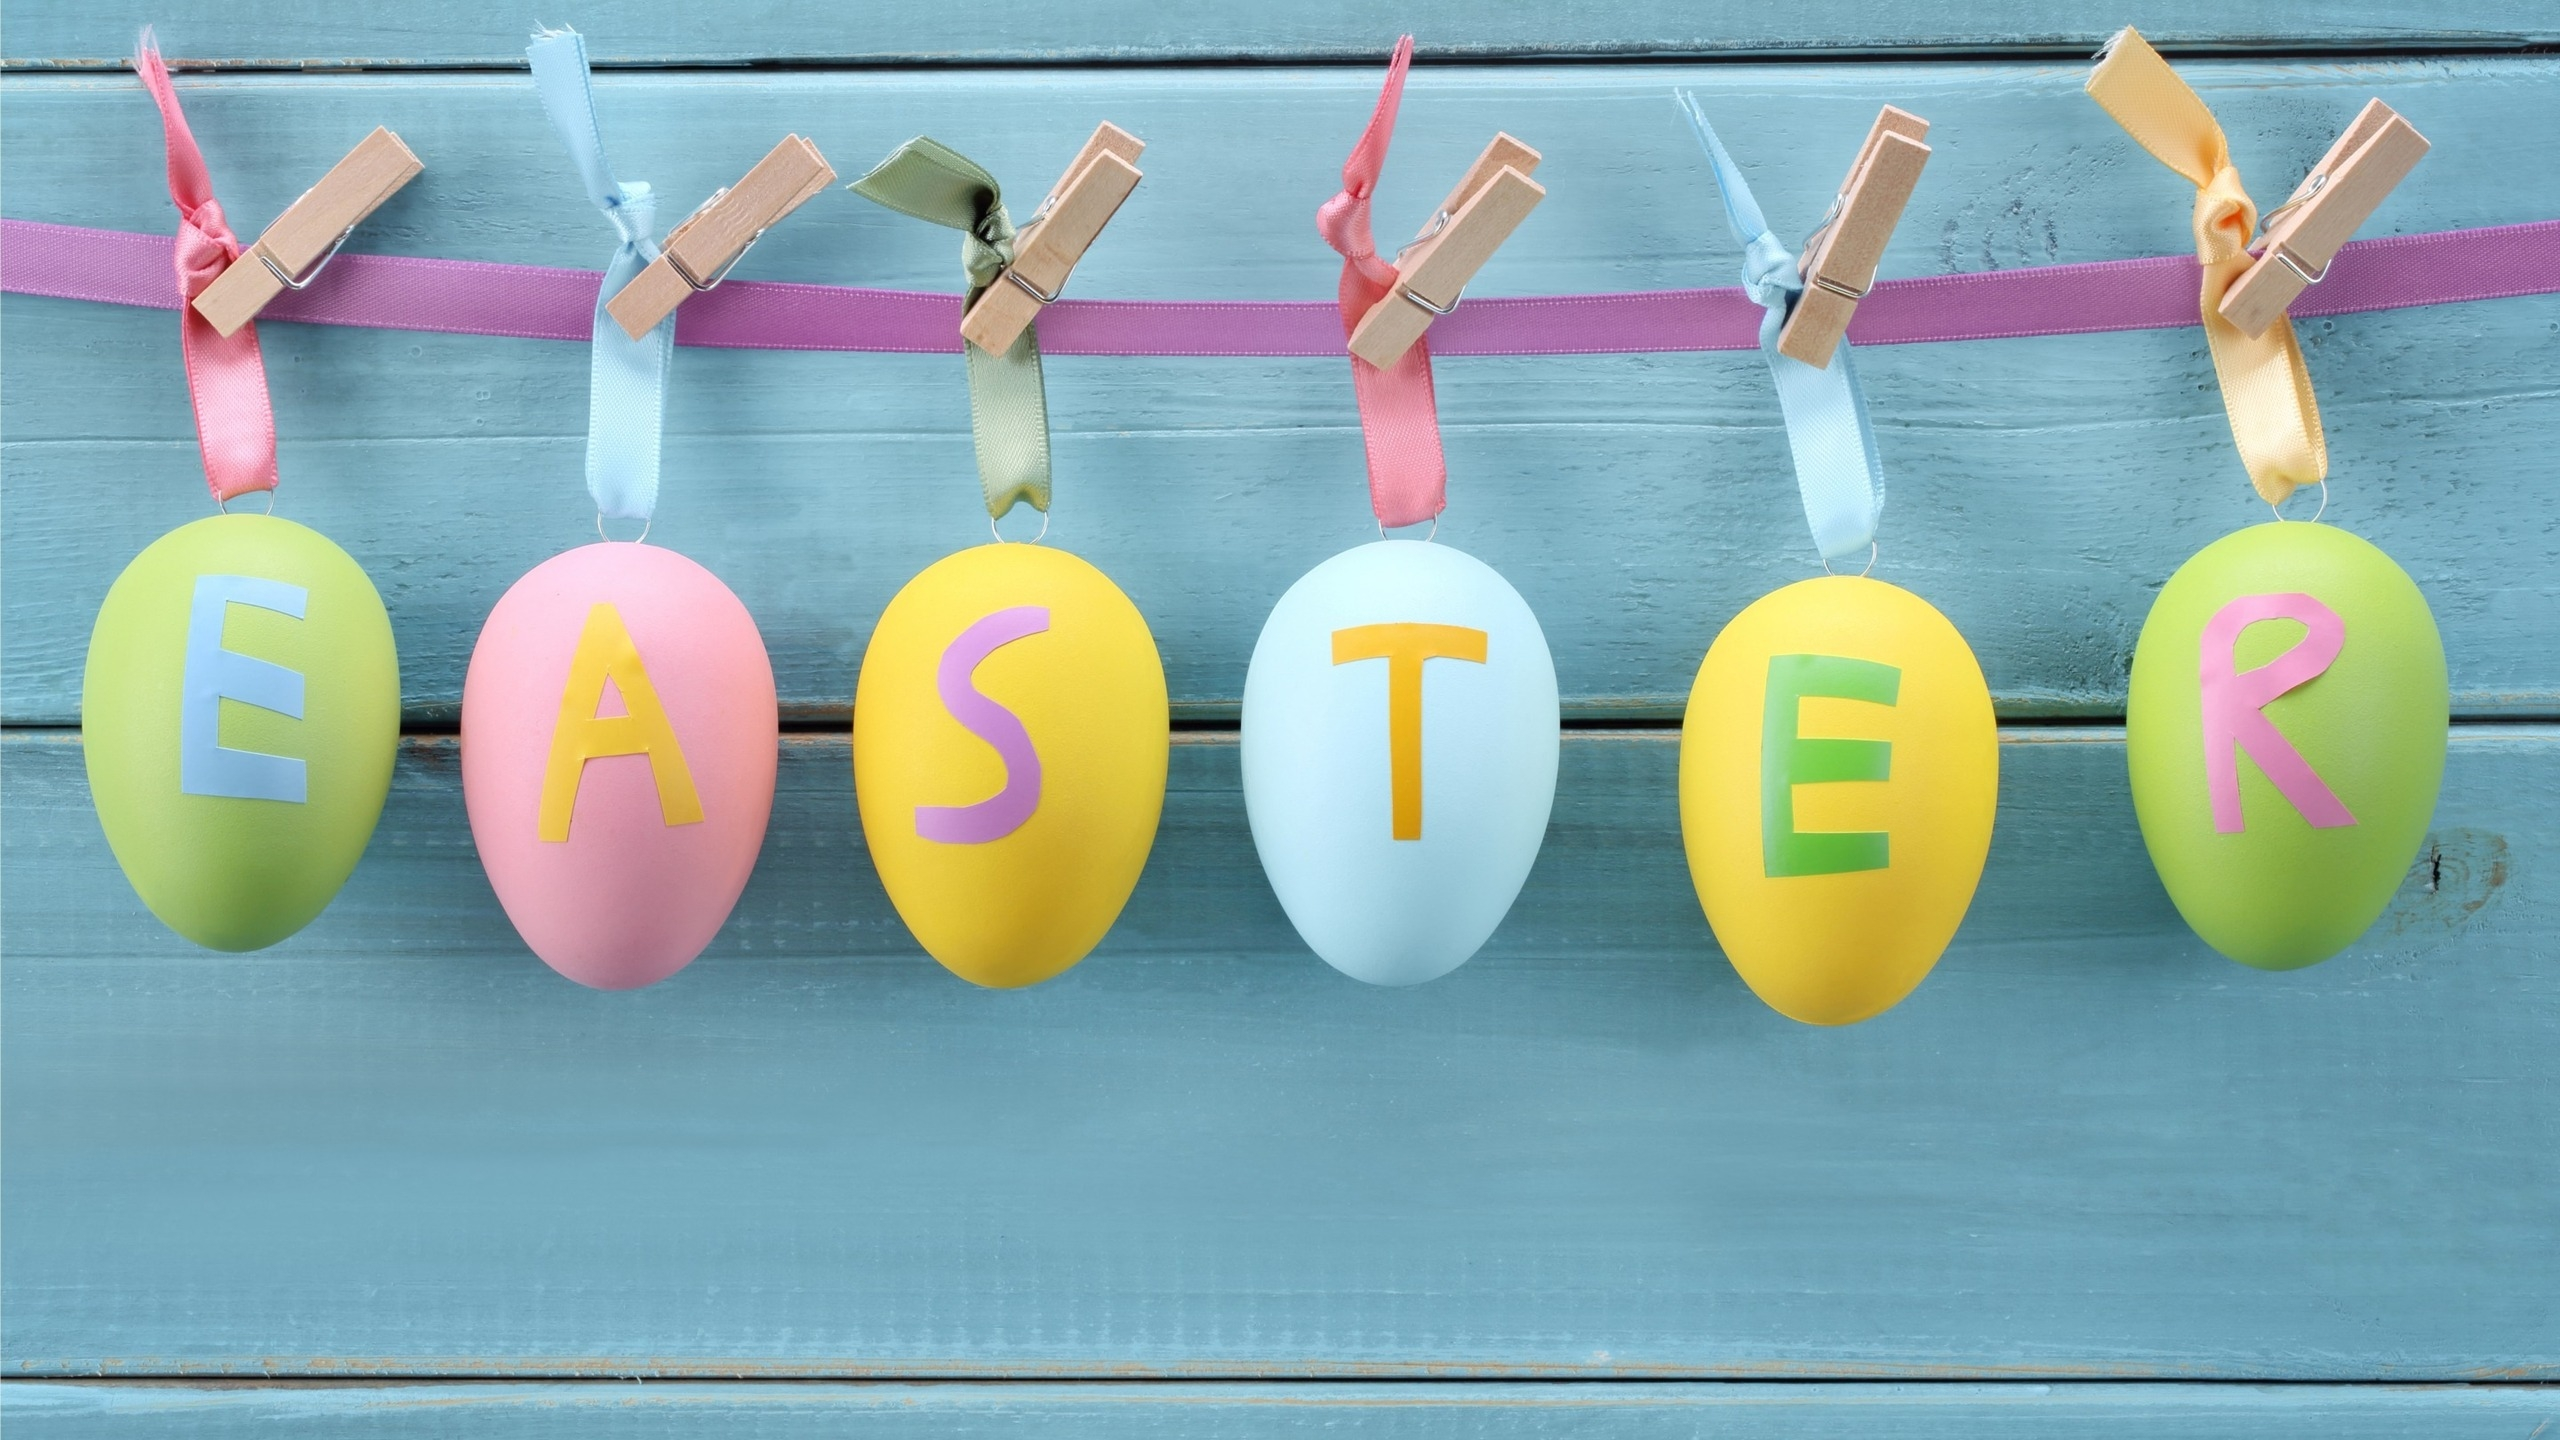 Easter Decorations for 2560x1440 HDTV resolution